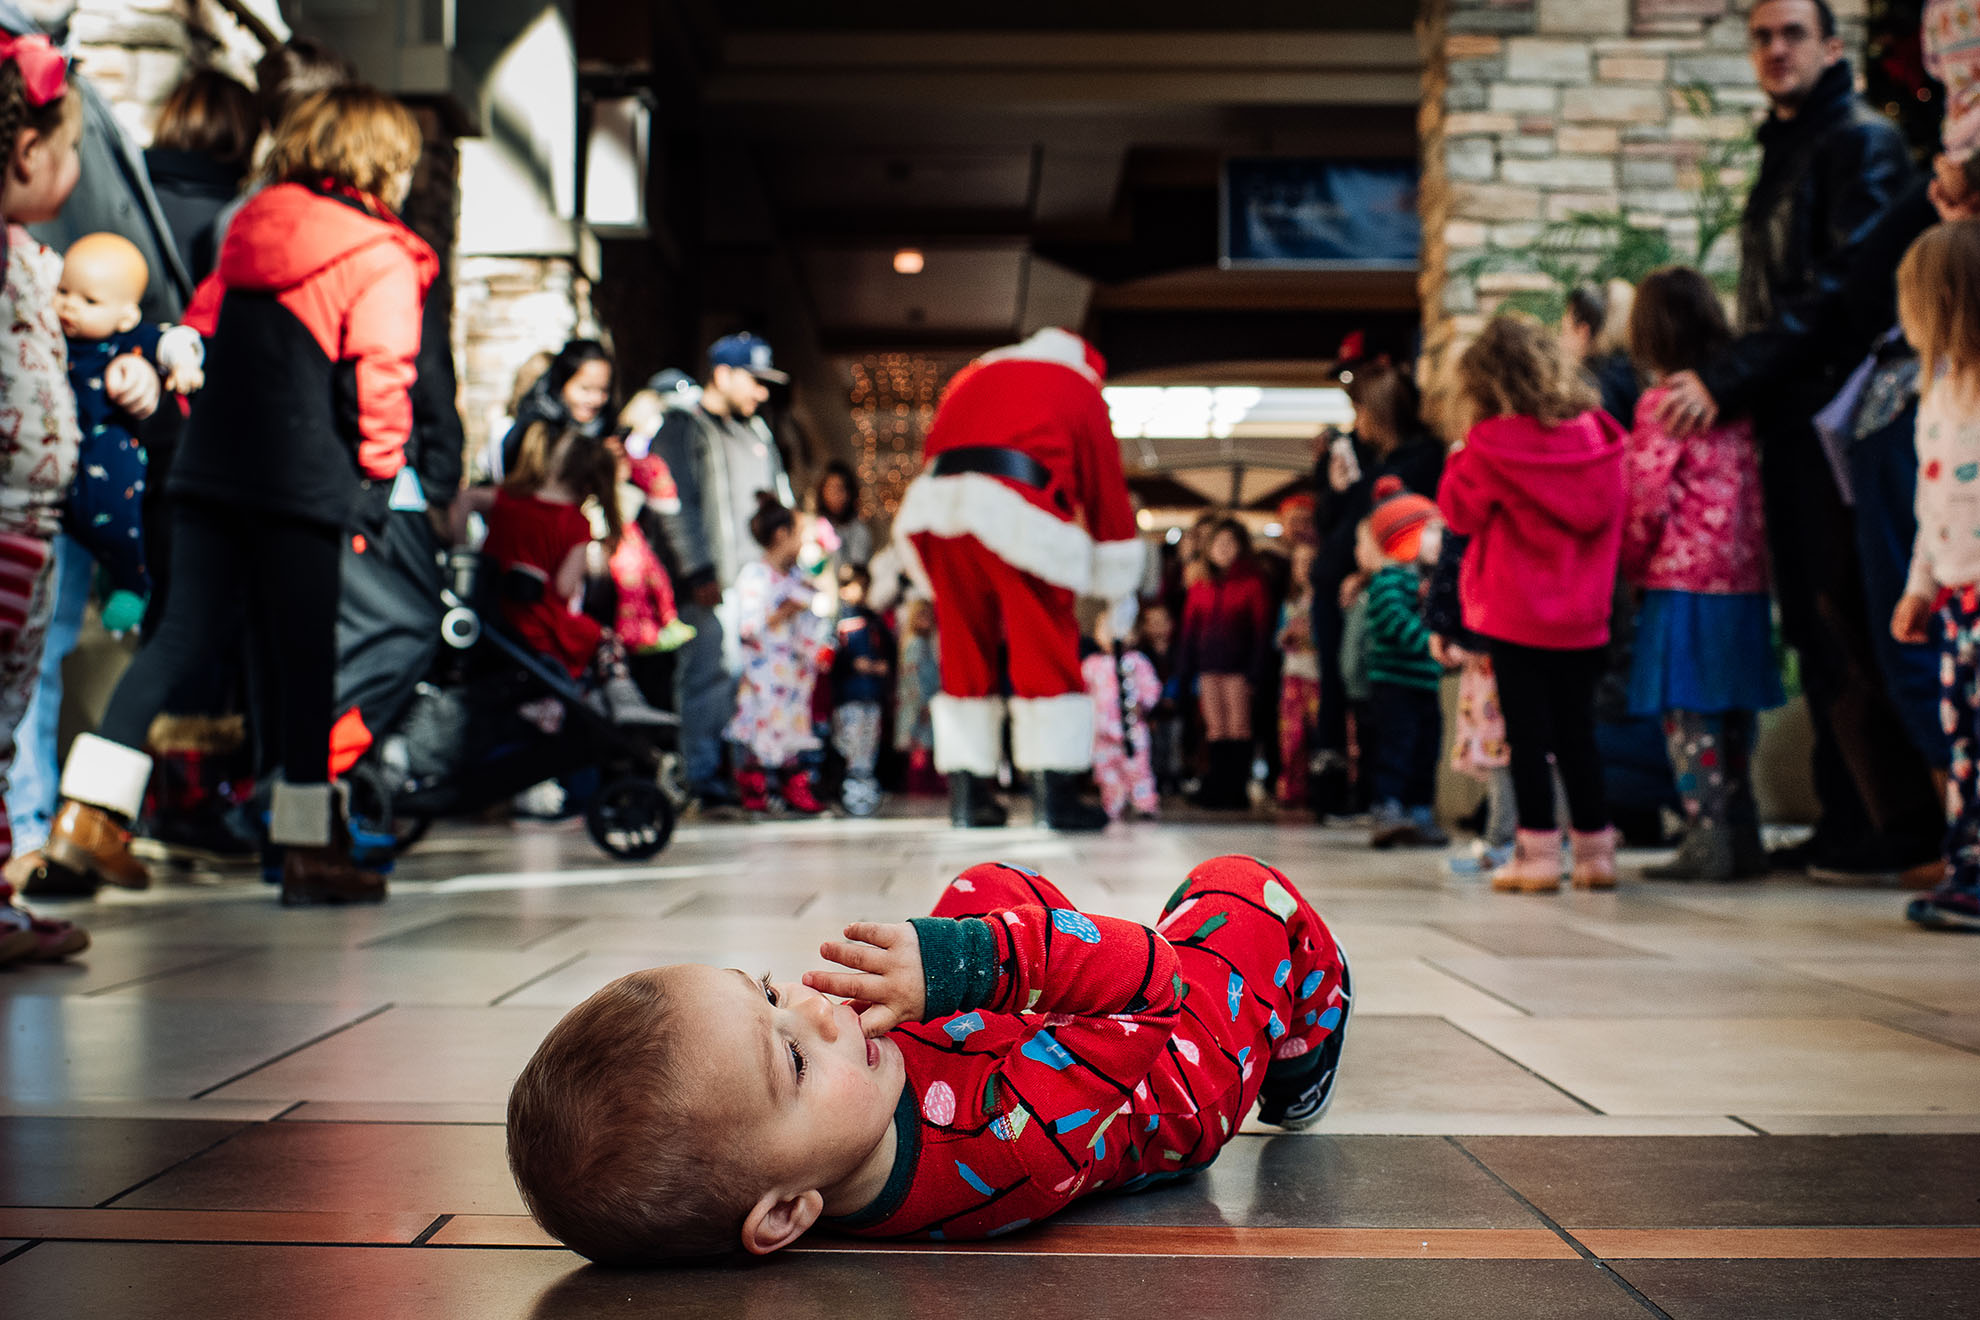 A baby lays on the floor of a mall, mid-tantrum, even though Santa is nearby.